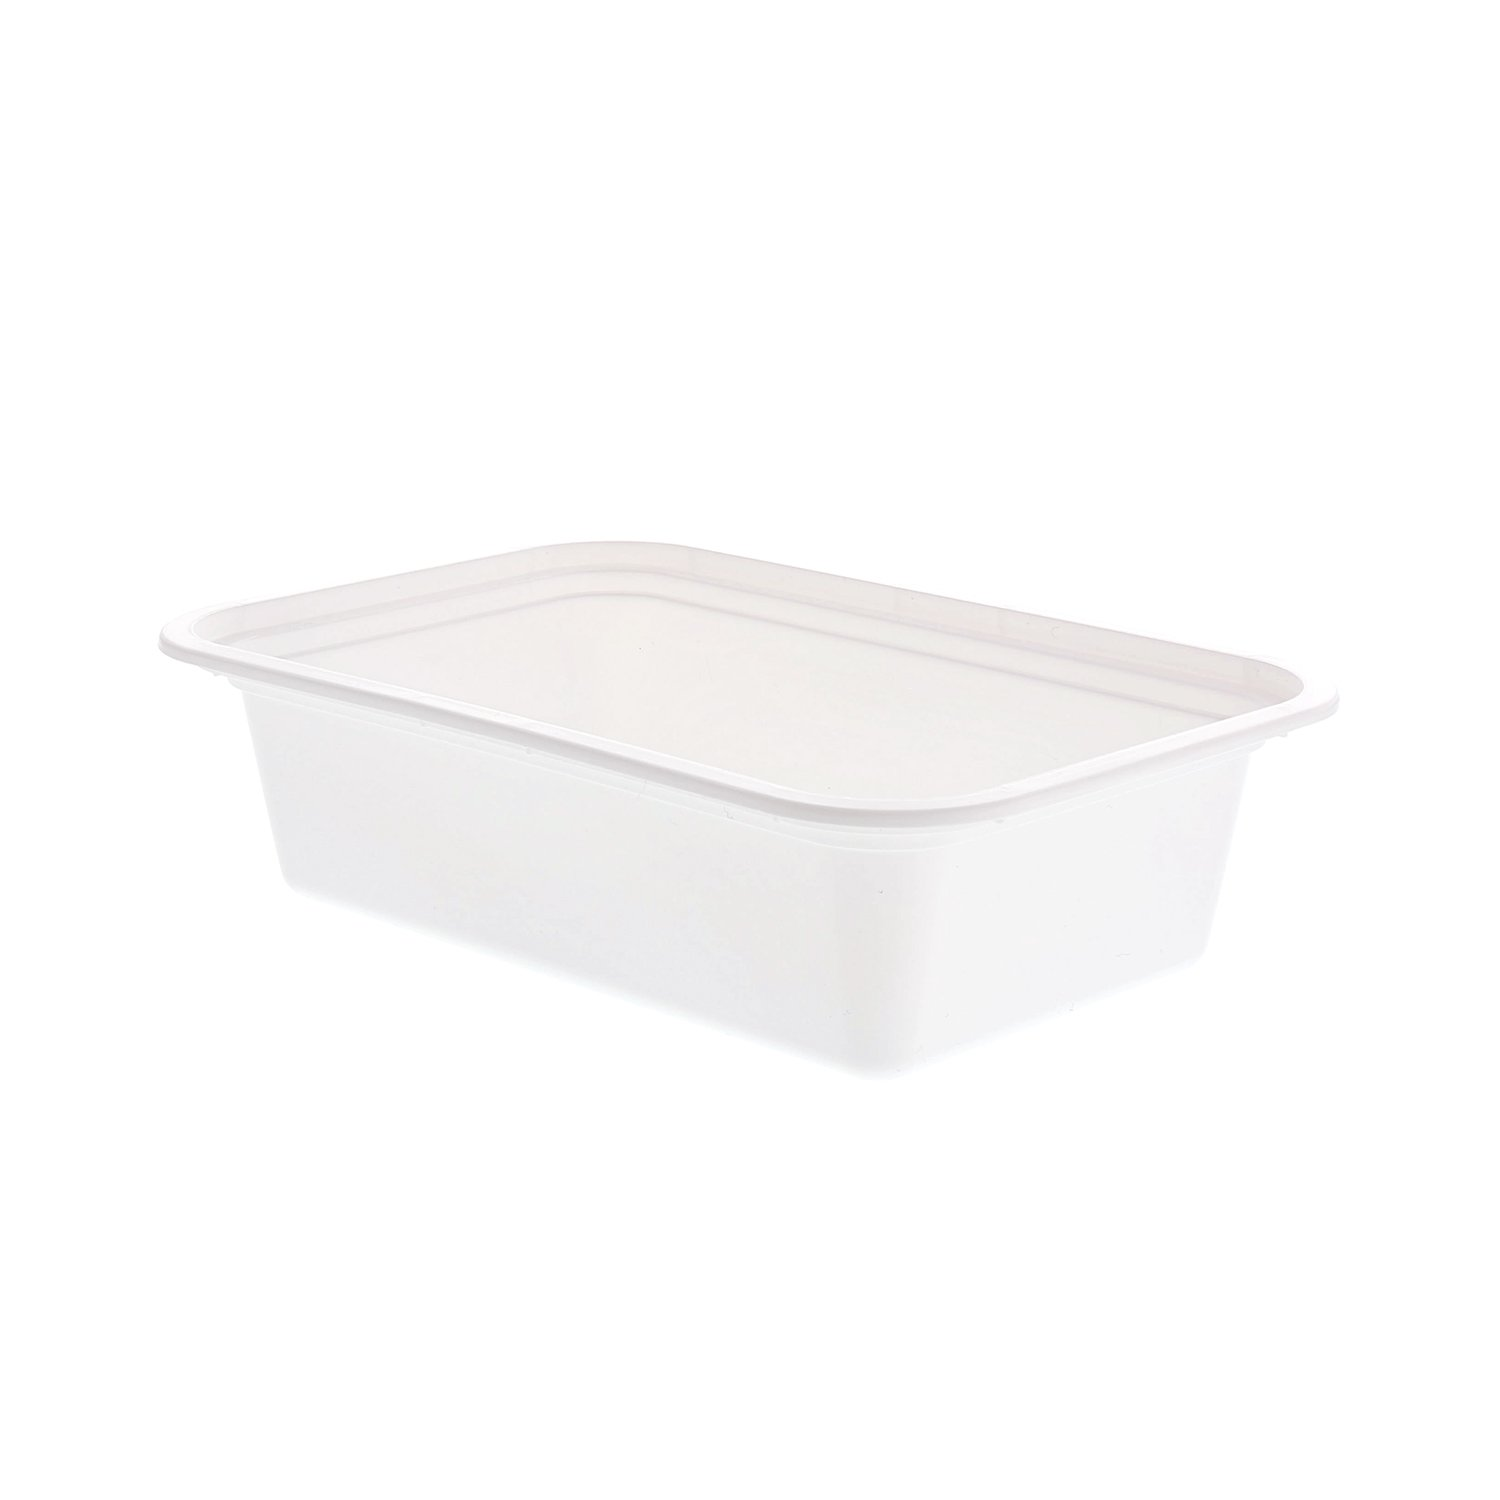 18 cm x 13 cm White Container, 5 cm Deep, 710 ml Case of 150 ...